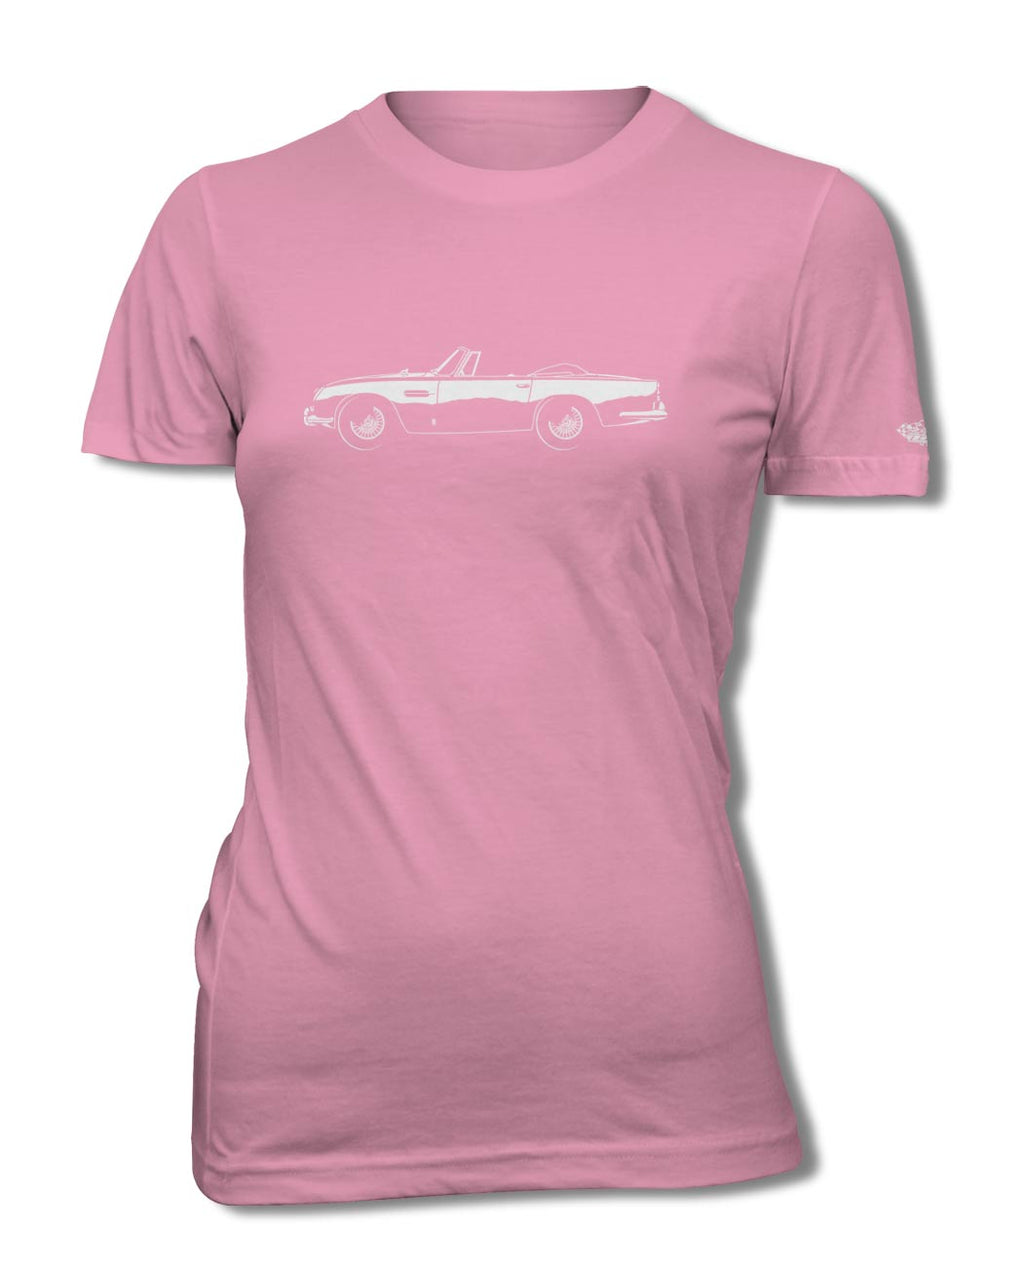 Aston Martin DB5 Convertible T-Shirt - Women - Side View